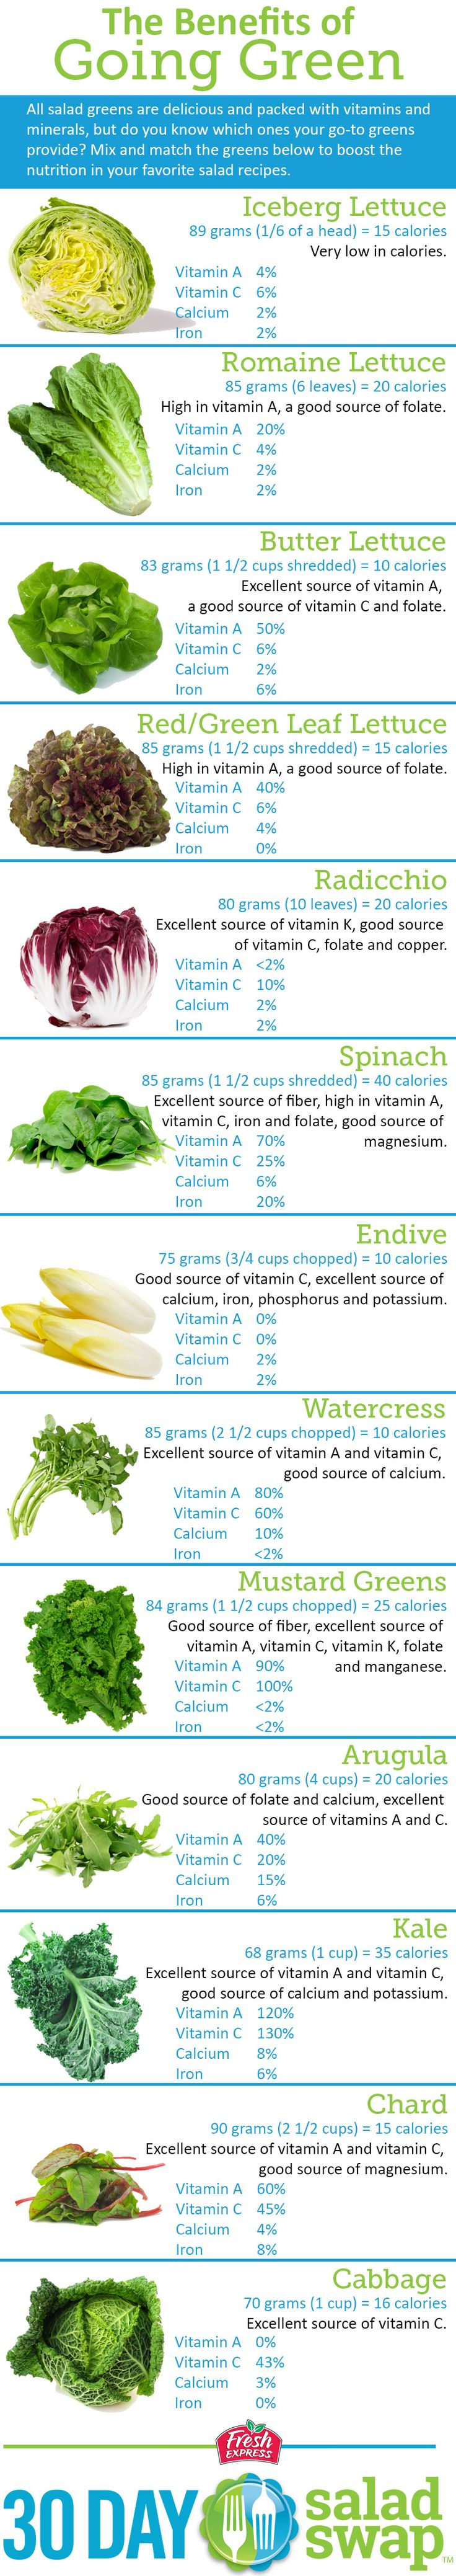 Eat your greens! Guide to nutrition and some top salad greens.